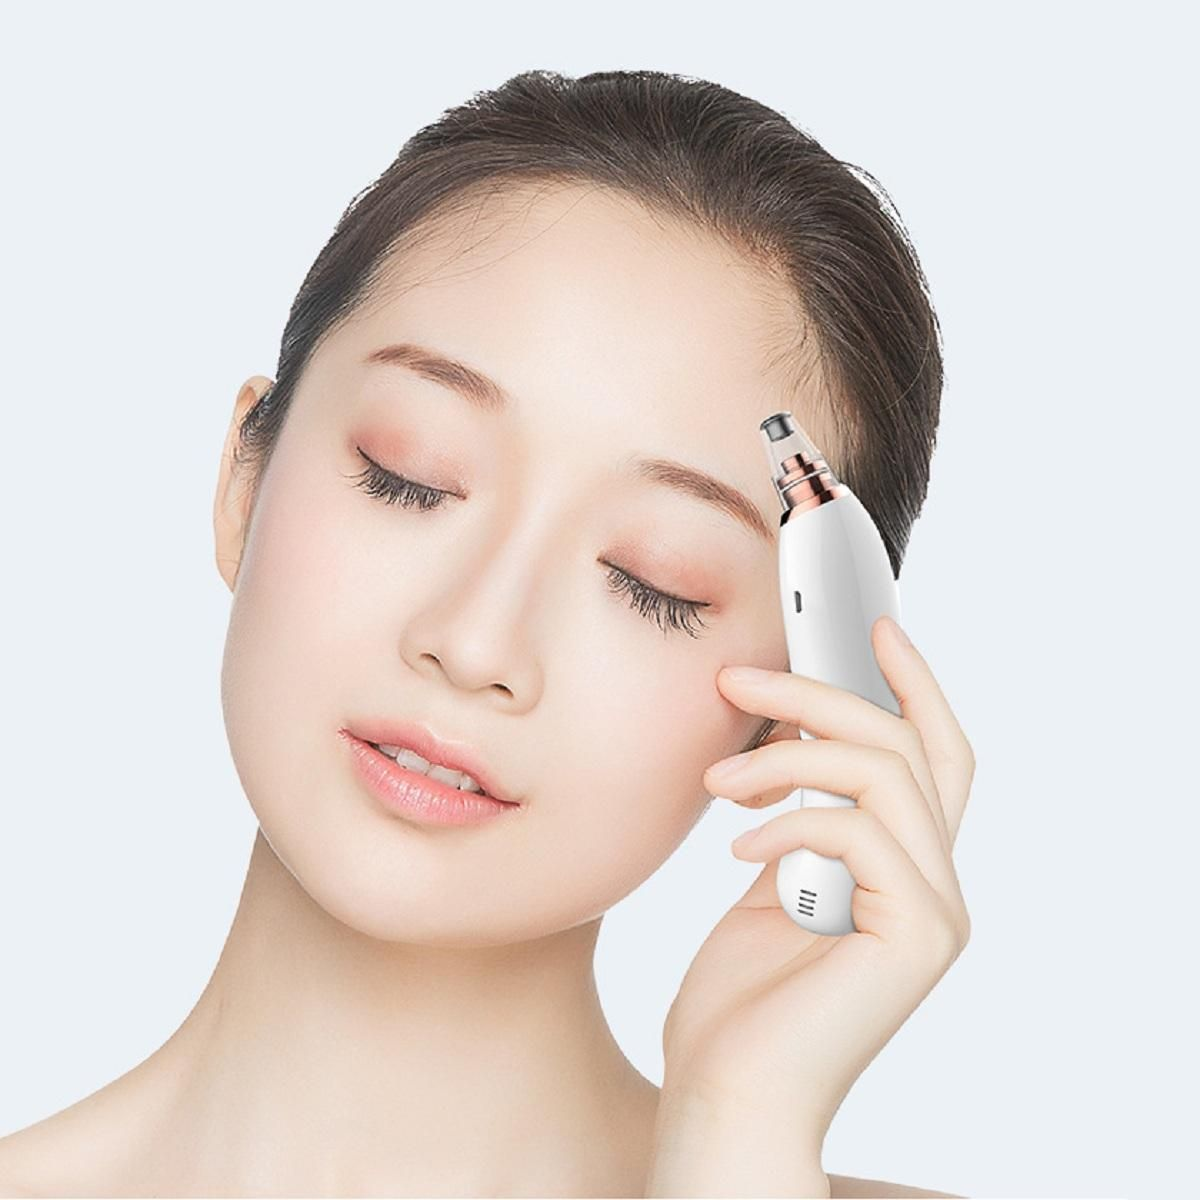 ZRB US$39.11 WIFI Visual Blackhead Instrument Electric Instrument Pore Cleaning Microscopic Beauty Home Phone General Purpose Electric Blackhead Suction